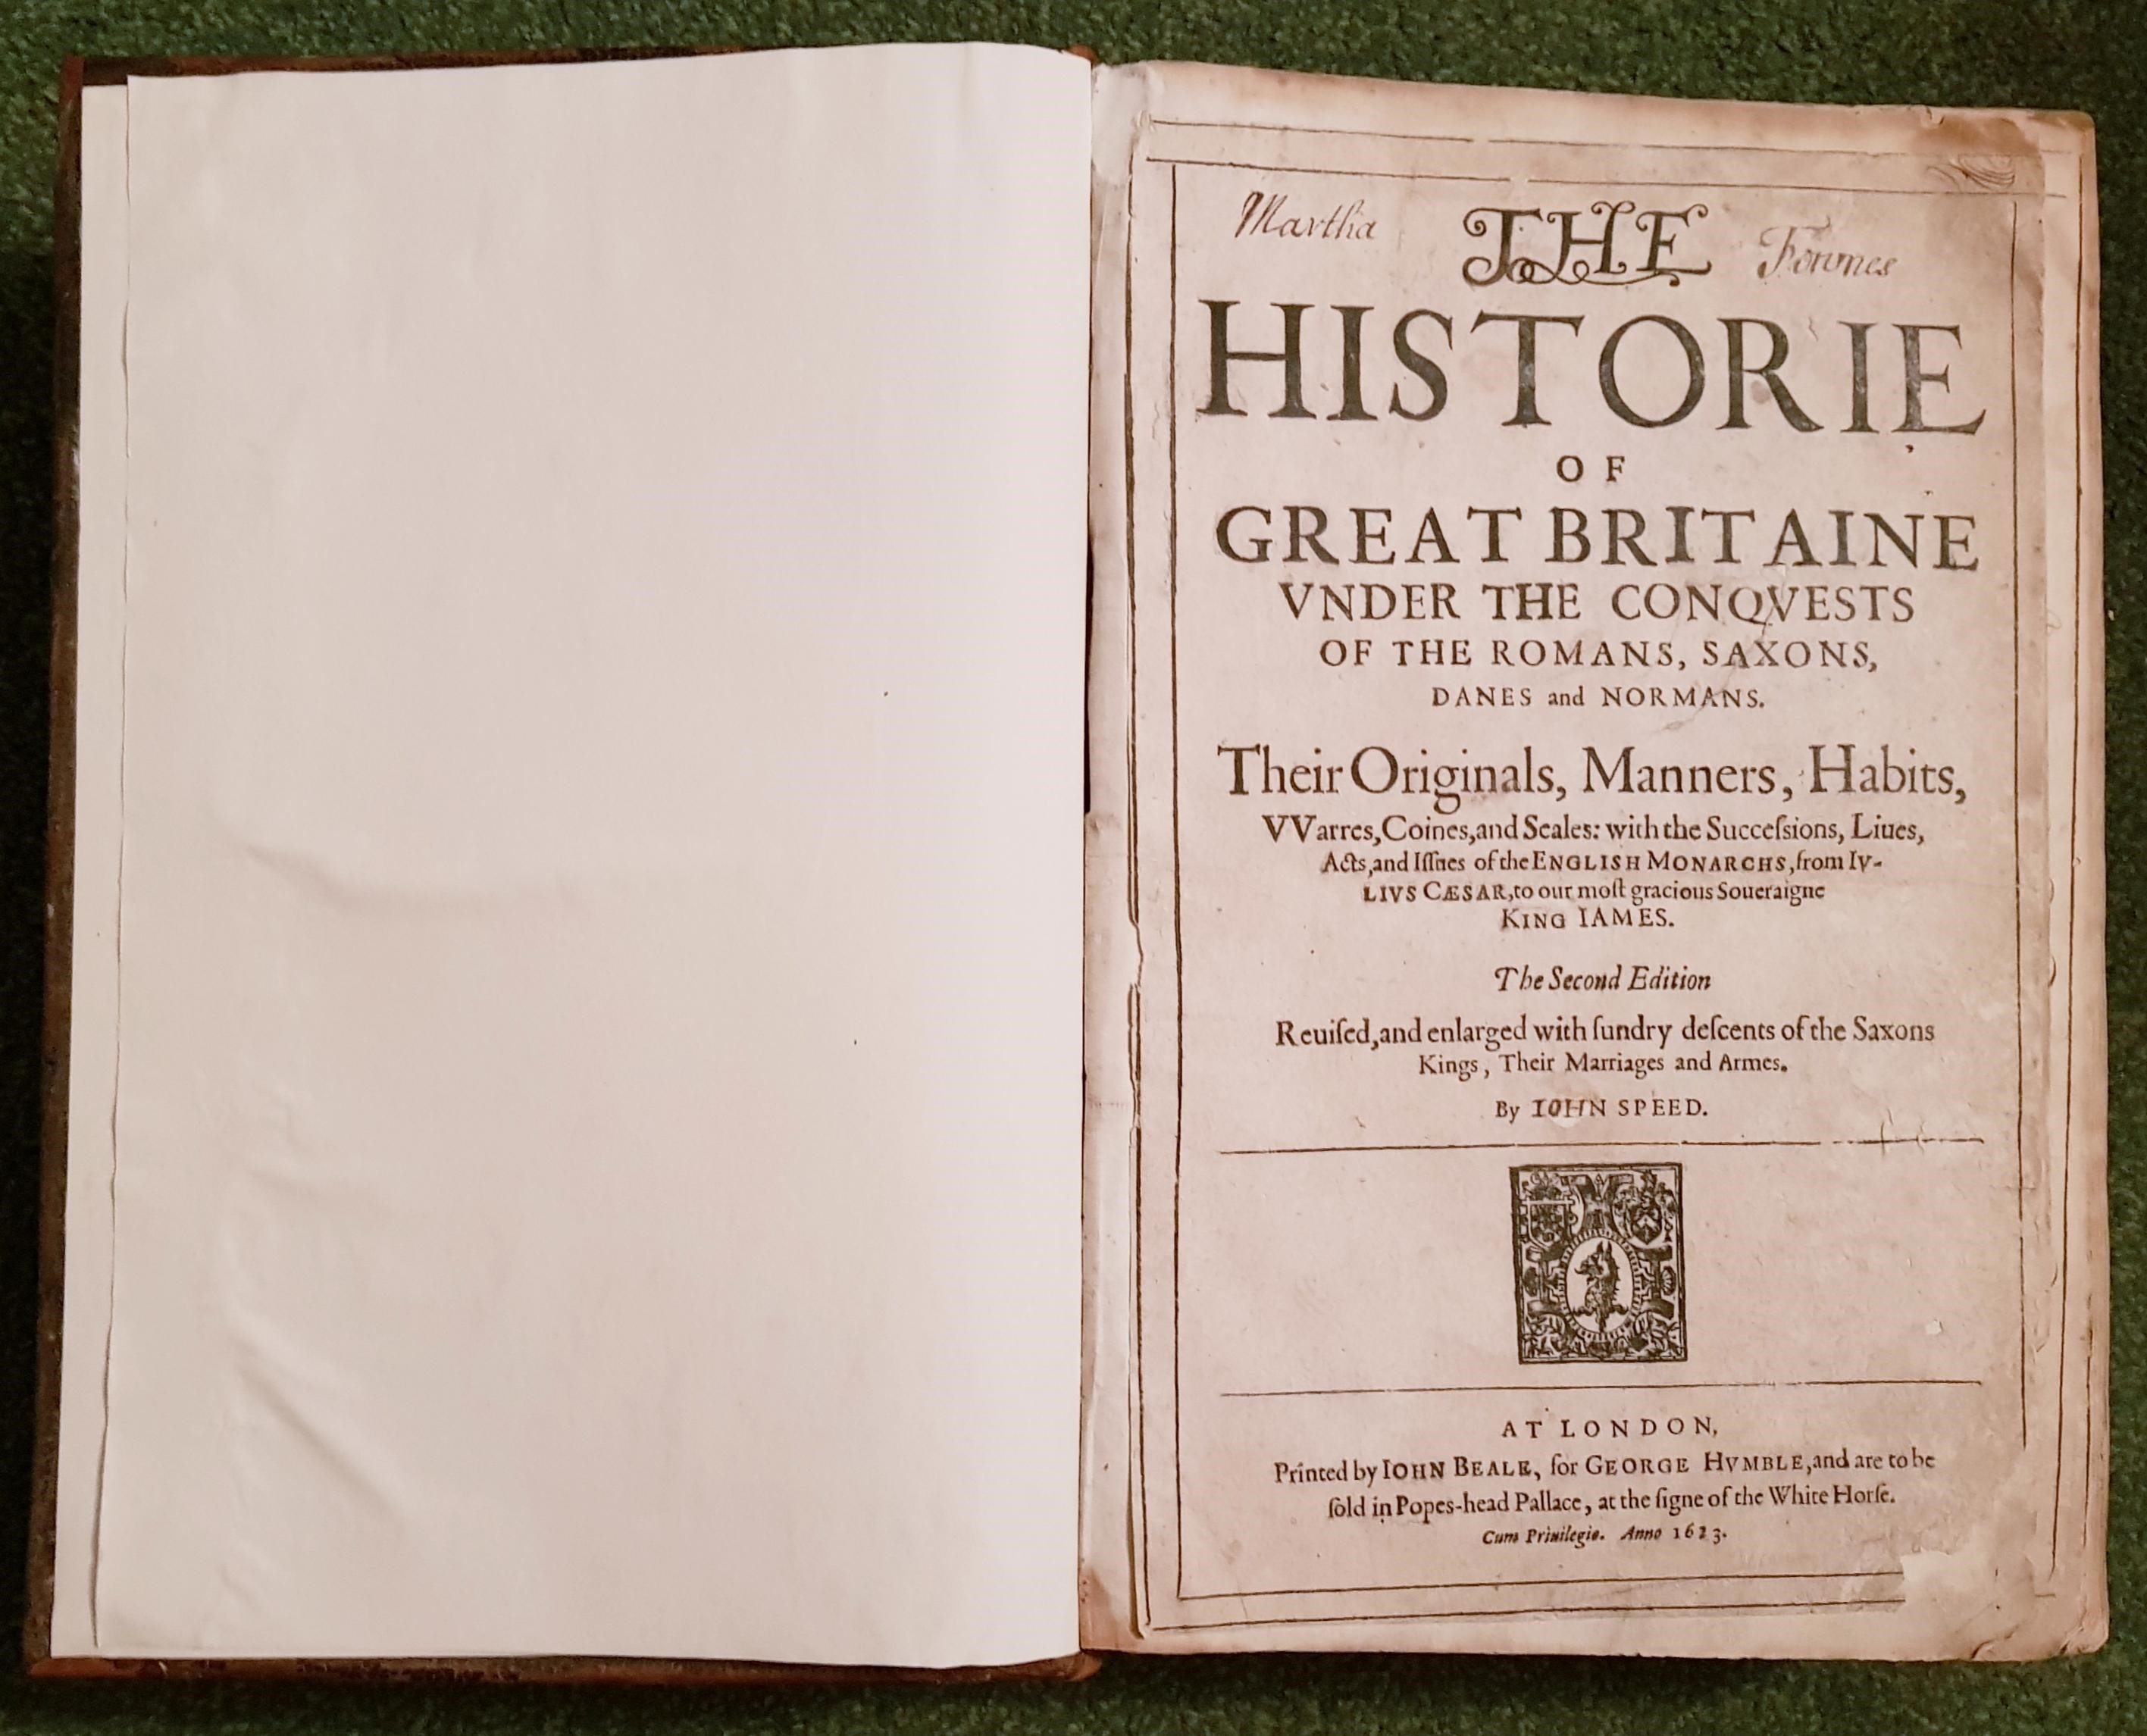 Image for The Historie Of Great Britaine Under The Conquests Of The Romans, Saxons, Danes And Normans: Their Originals, Manners, Habits, Warres, Coines, And Seales: With The Successions, Lives, Acts, And Issues Of The English Monarchs, From Julius Caesar...